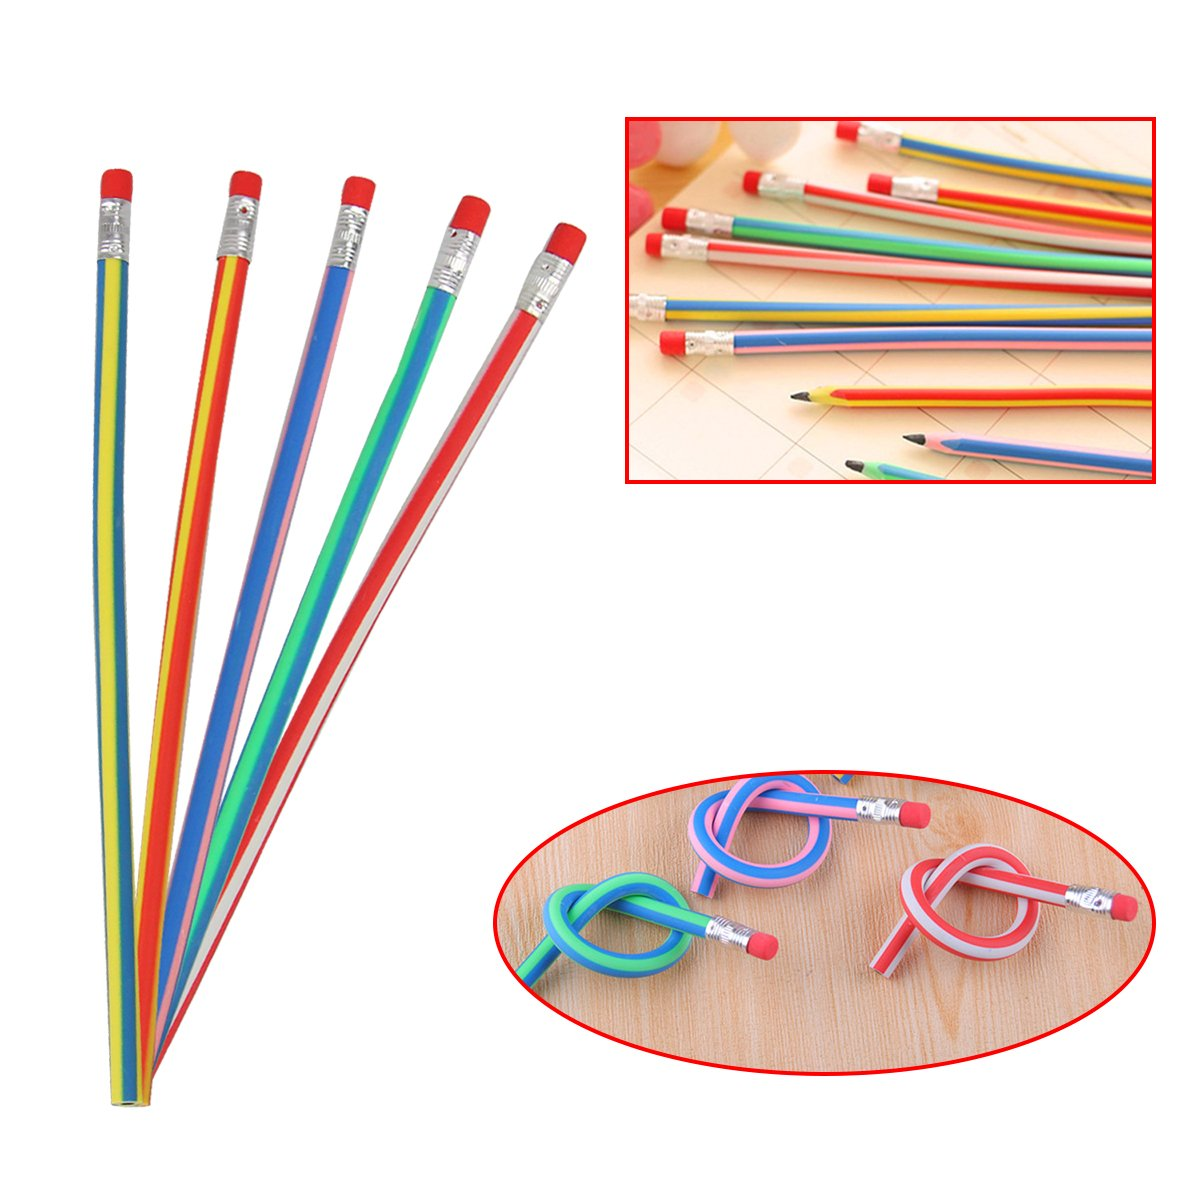 Flexible Pencils Pack of 40 Soft Pencil with Eraser for Kids Magic Colorful Bendy Pencil